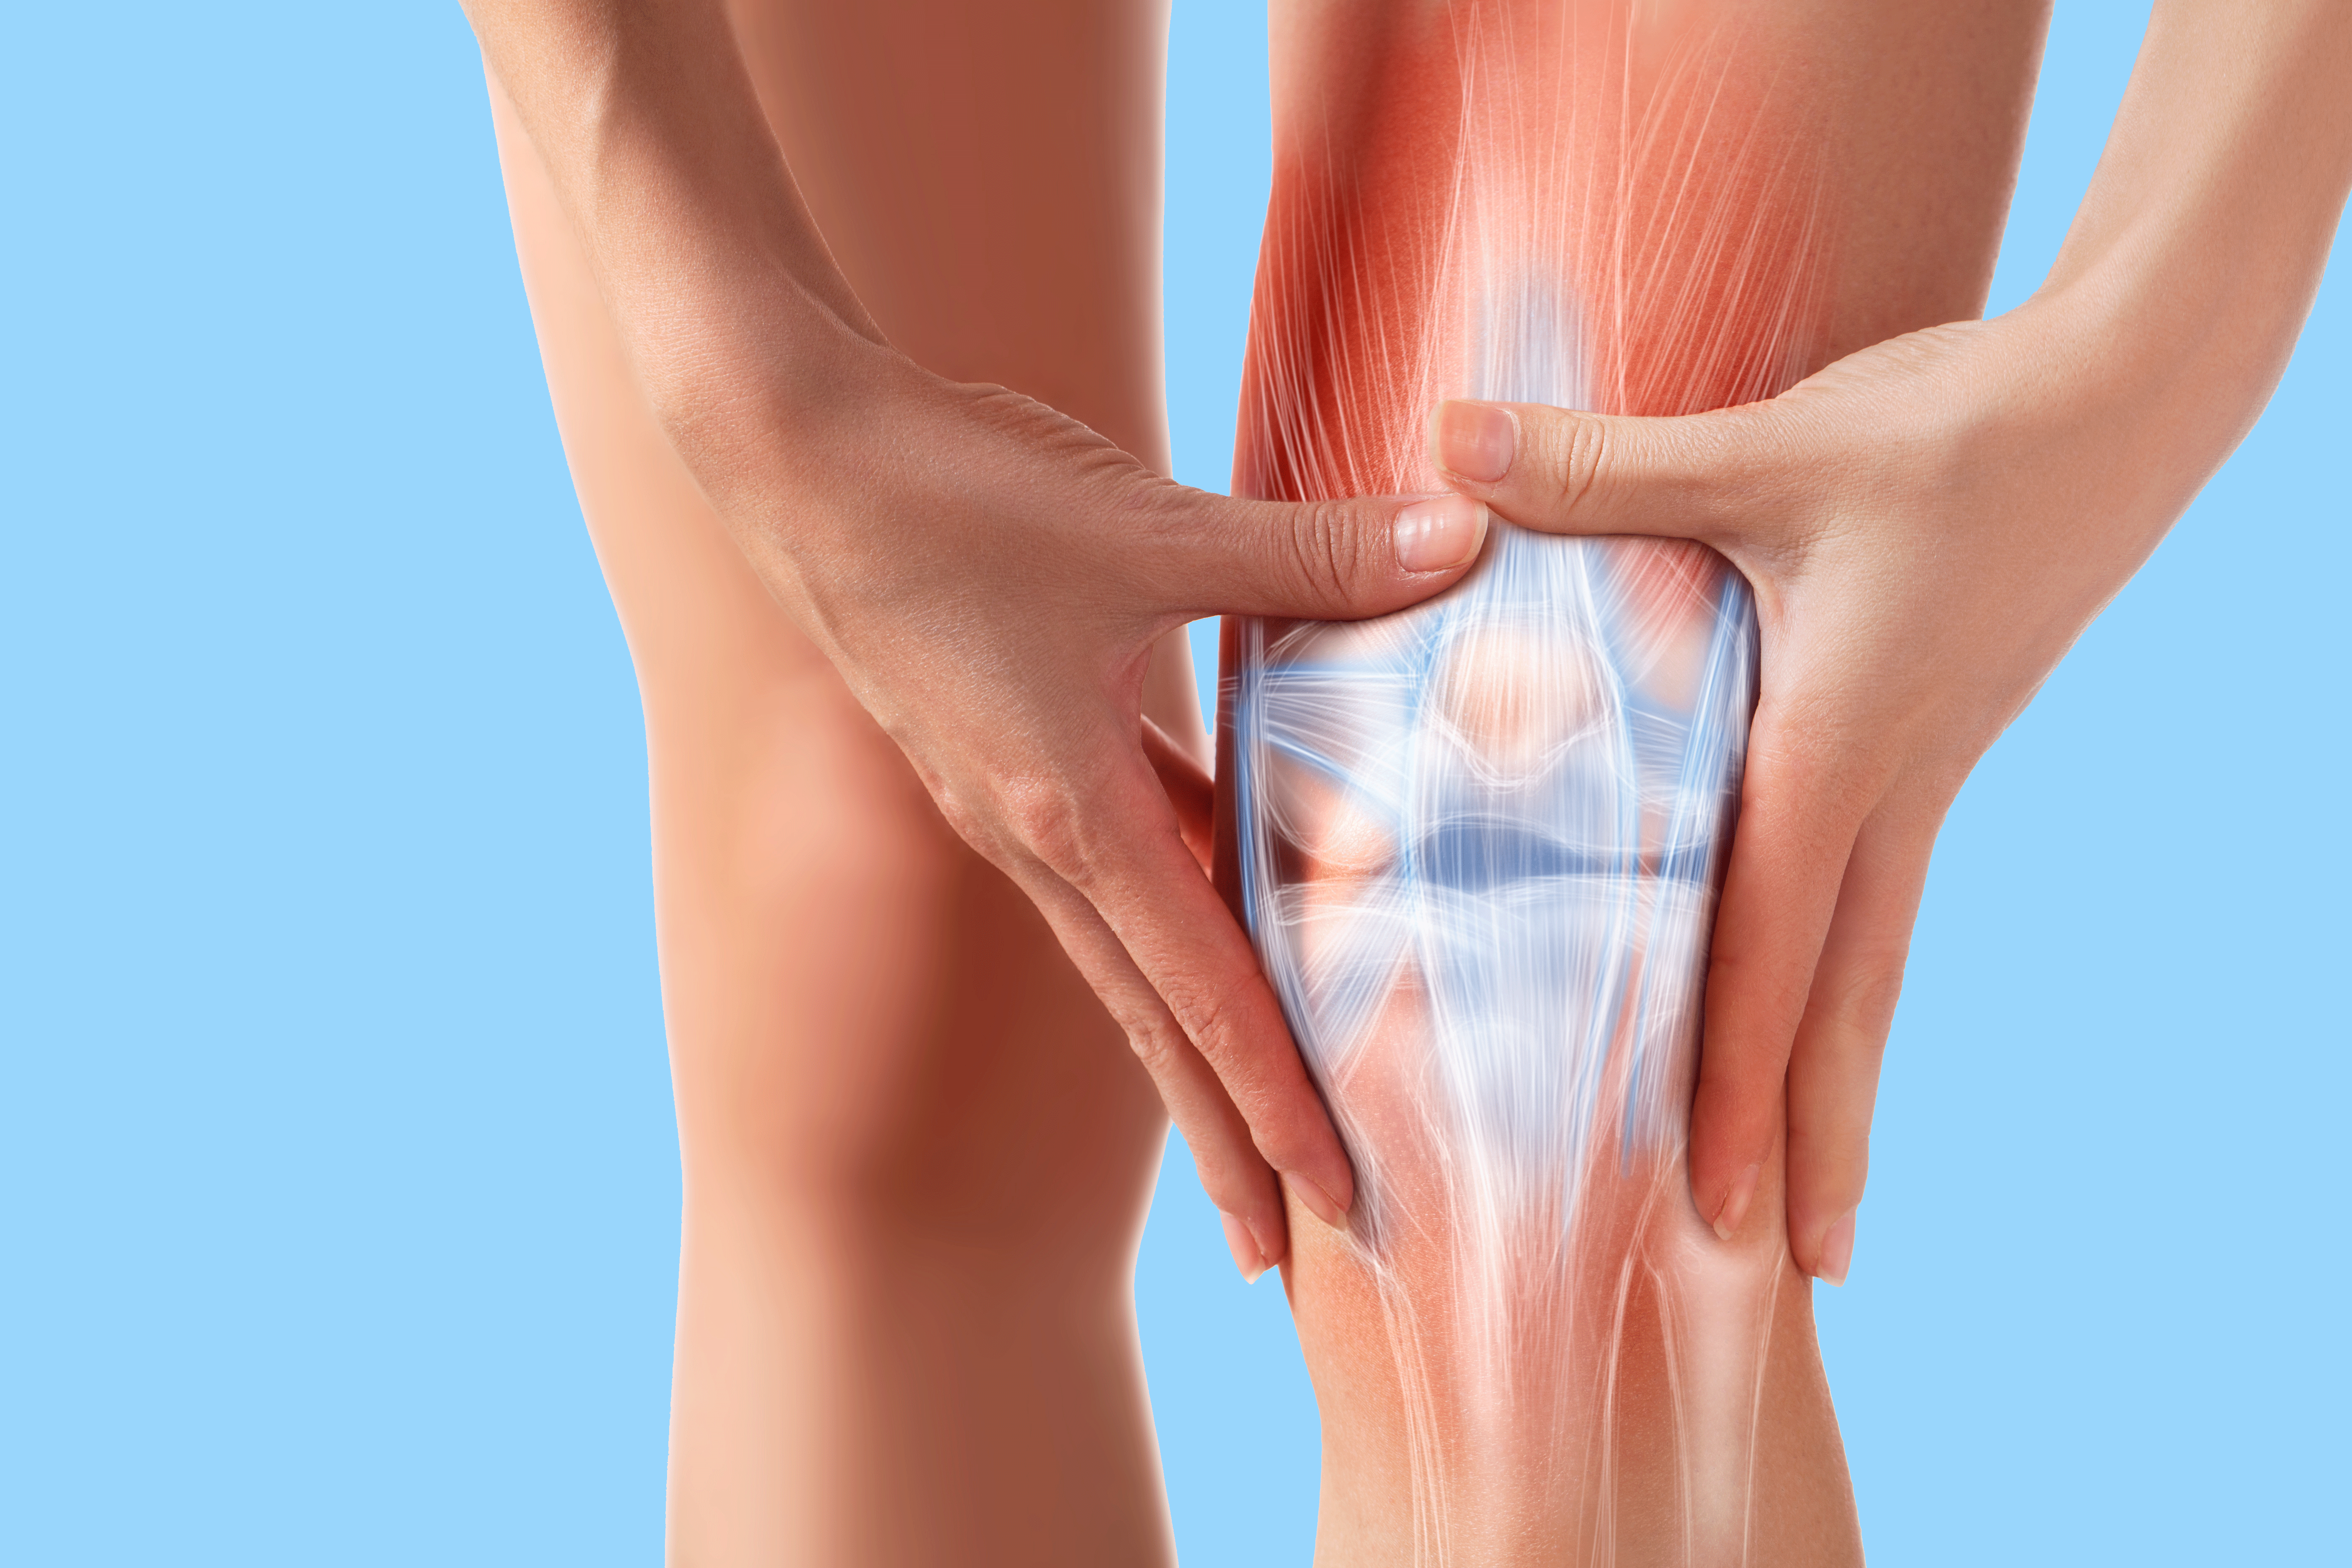 """Knee pain can be acute or chronic and it can be caused by several issues like osteoarthritis and knee bursitis. In this article, we discuss """"what doctor should I see for knee pain?"""""""